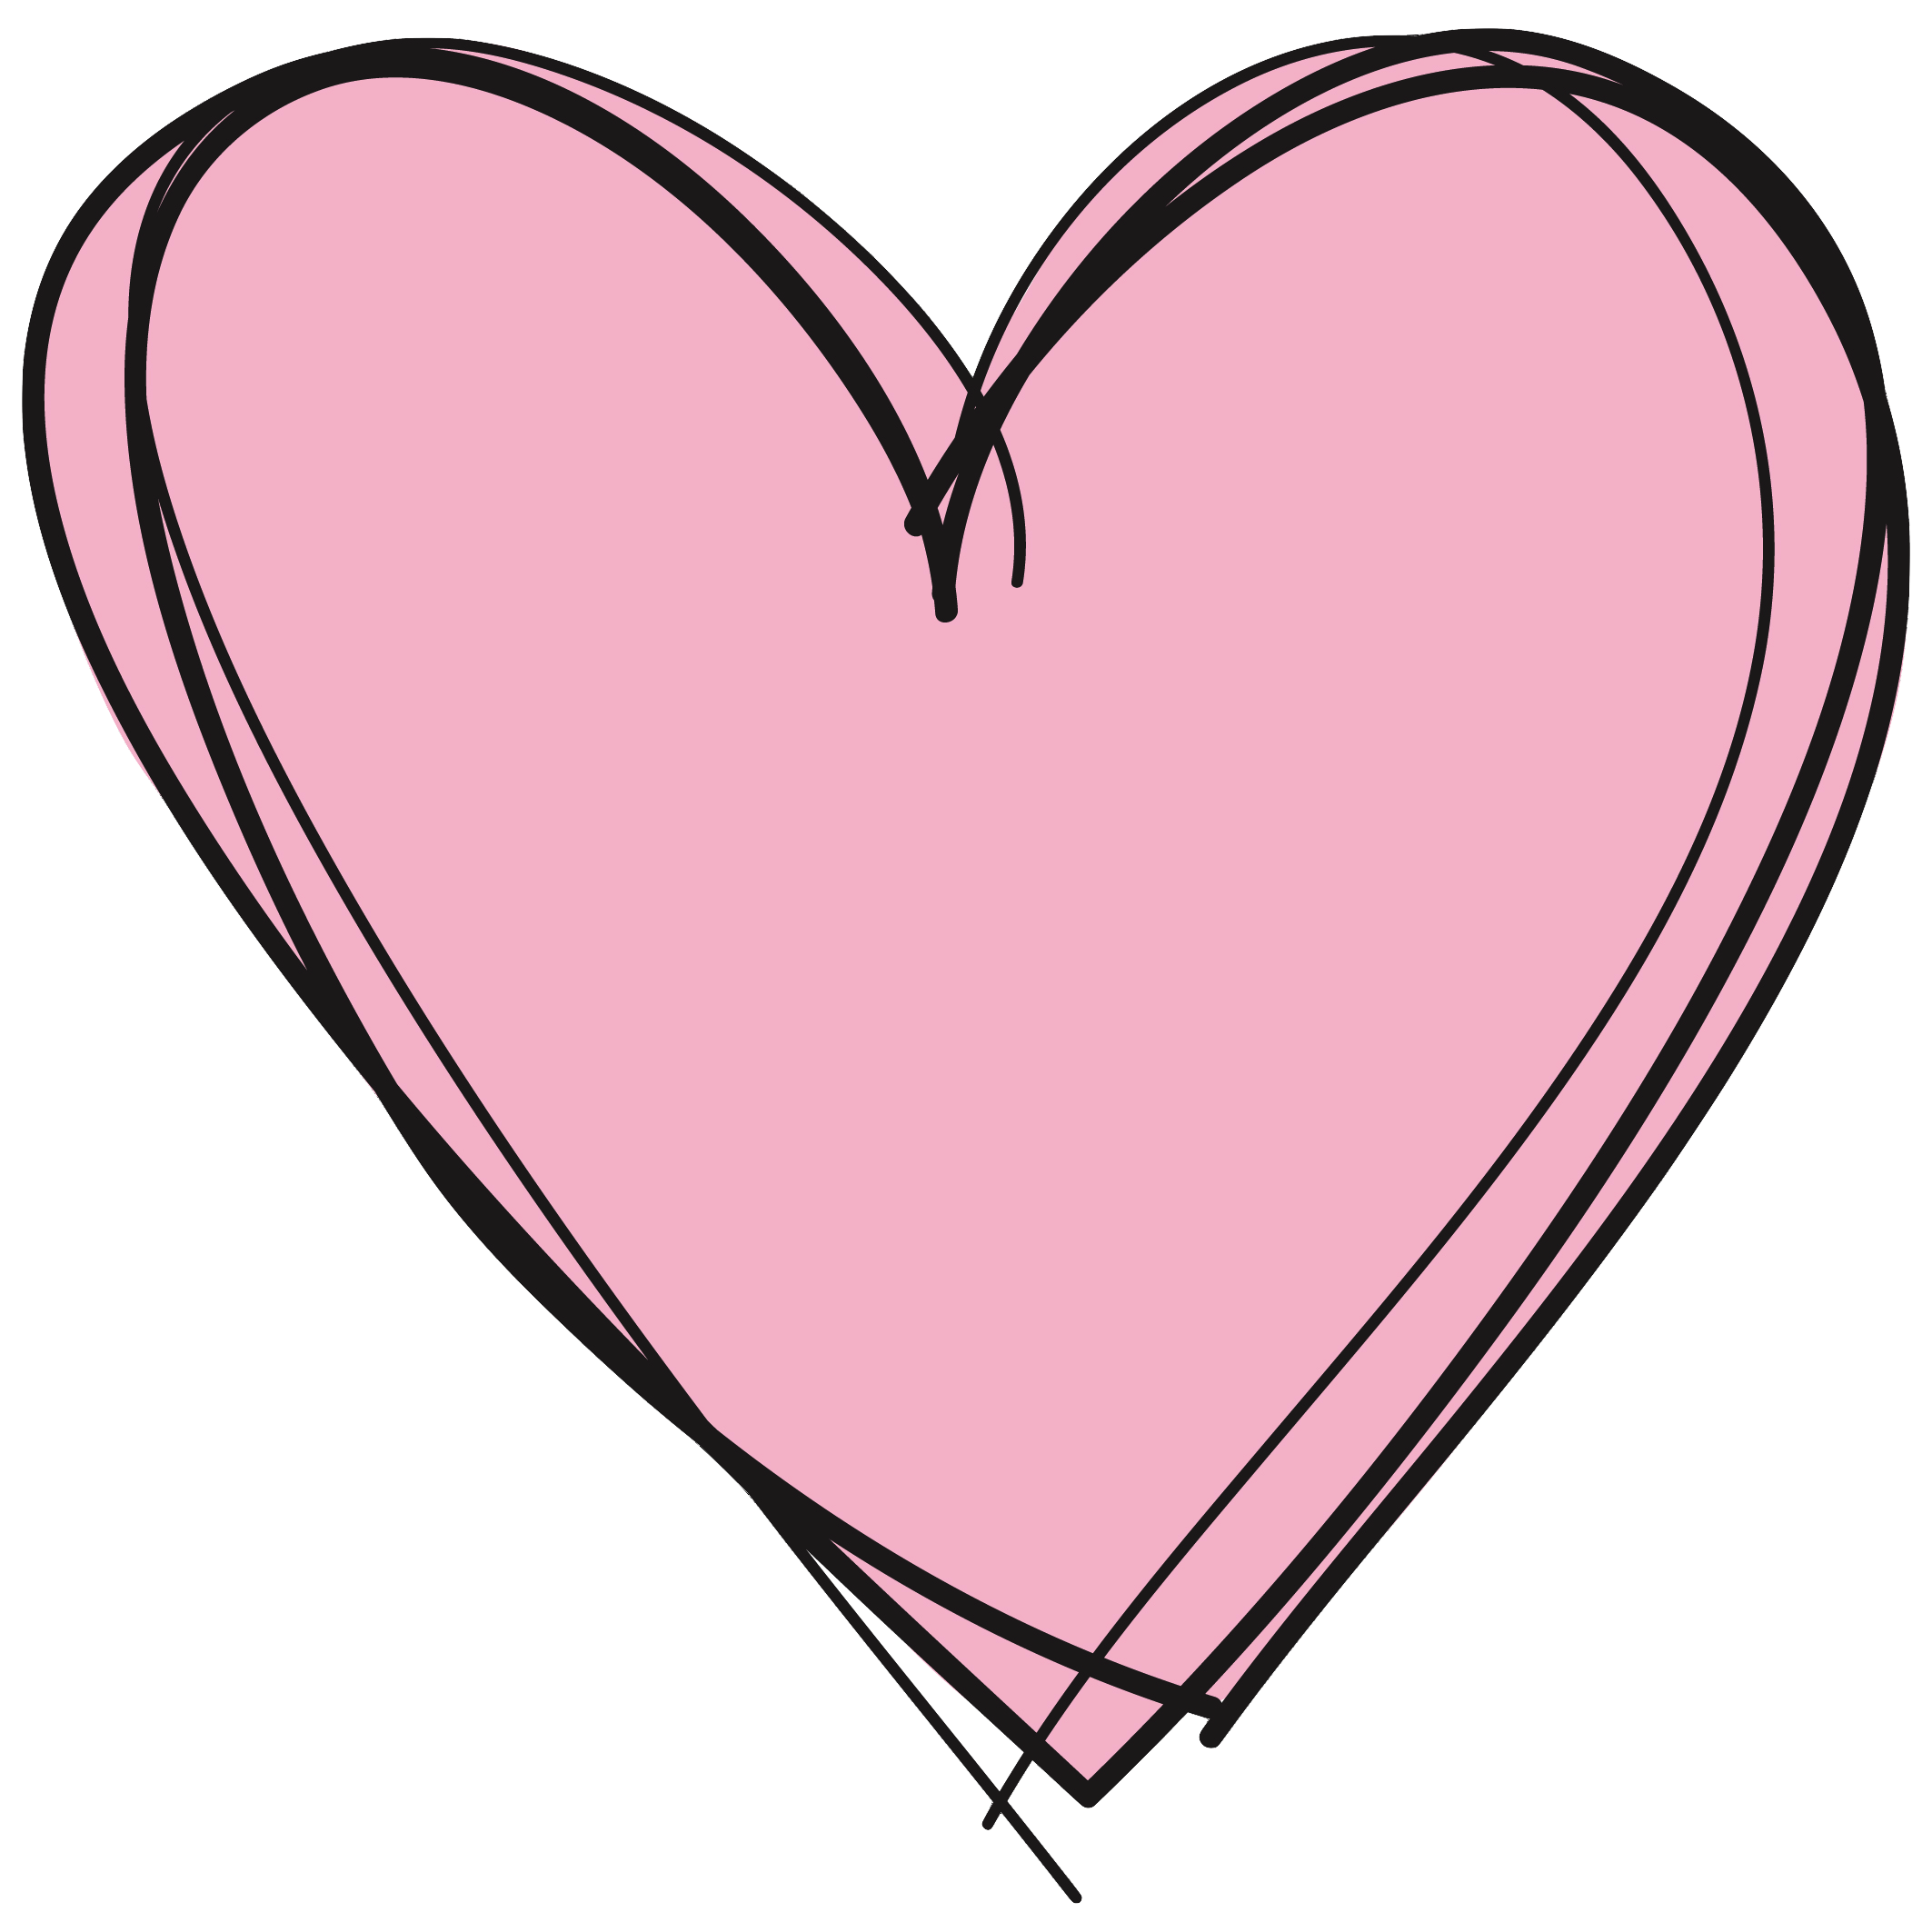 Drawn hearts png tumblr Hearts Free Row Images Clipart